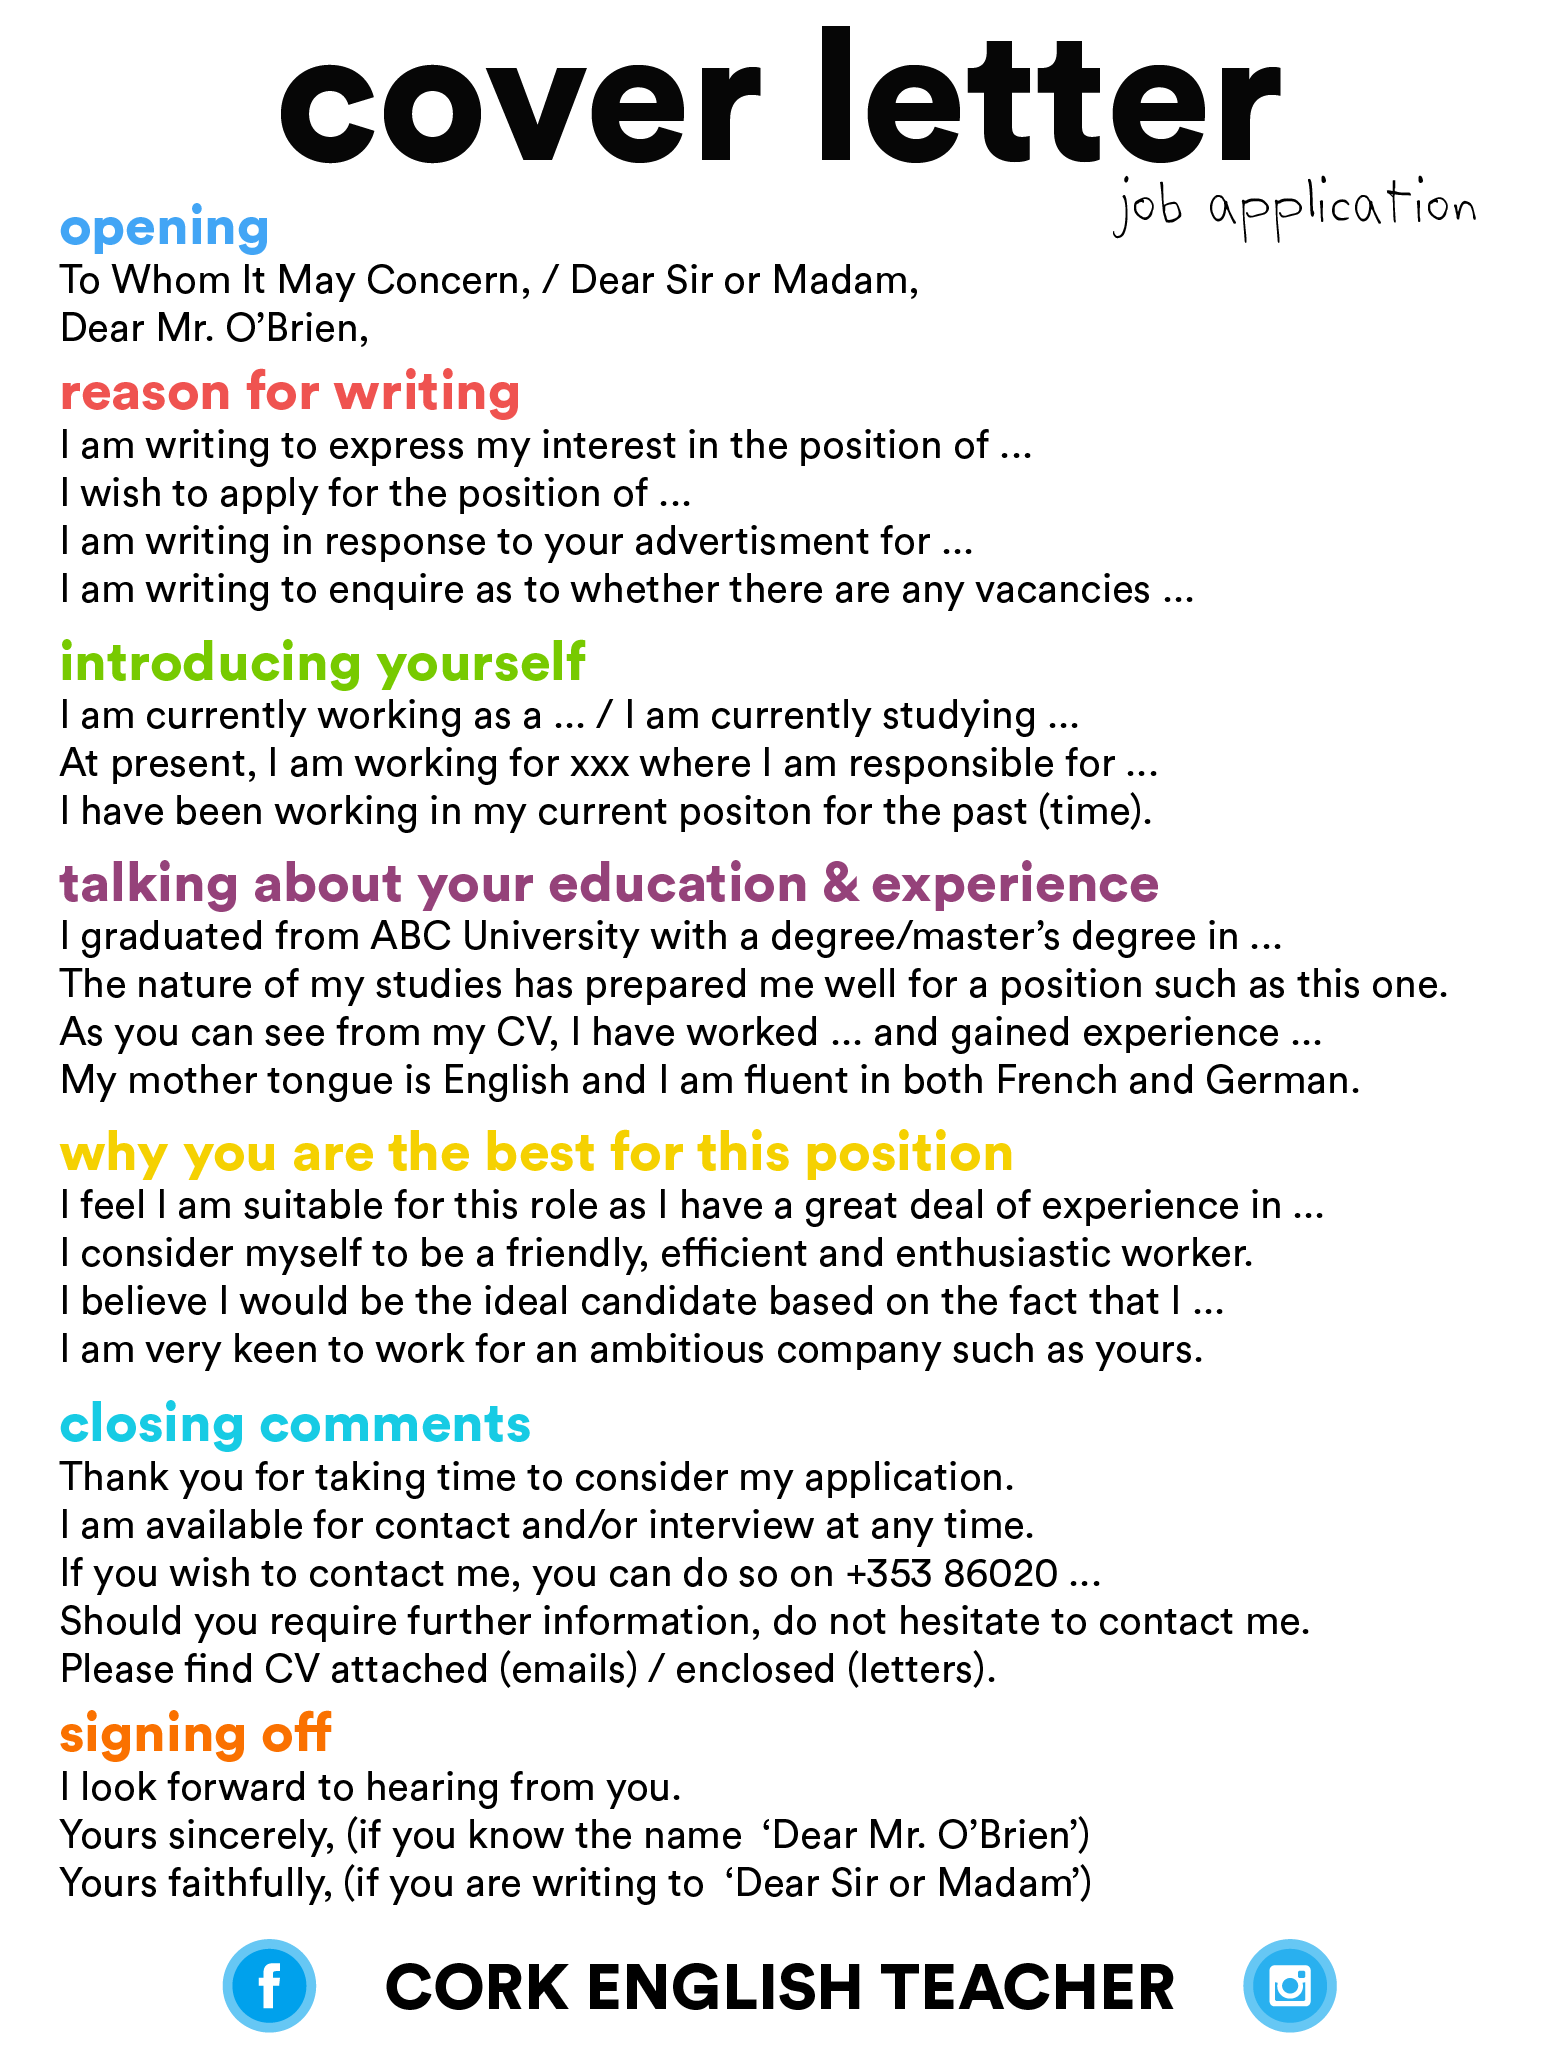 cover letter - job application | things made easy | pinterest